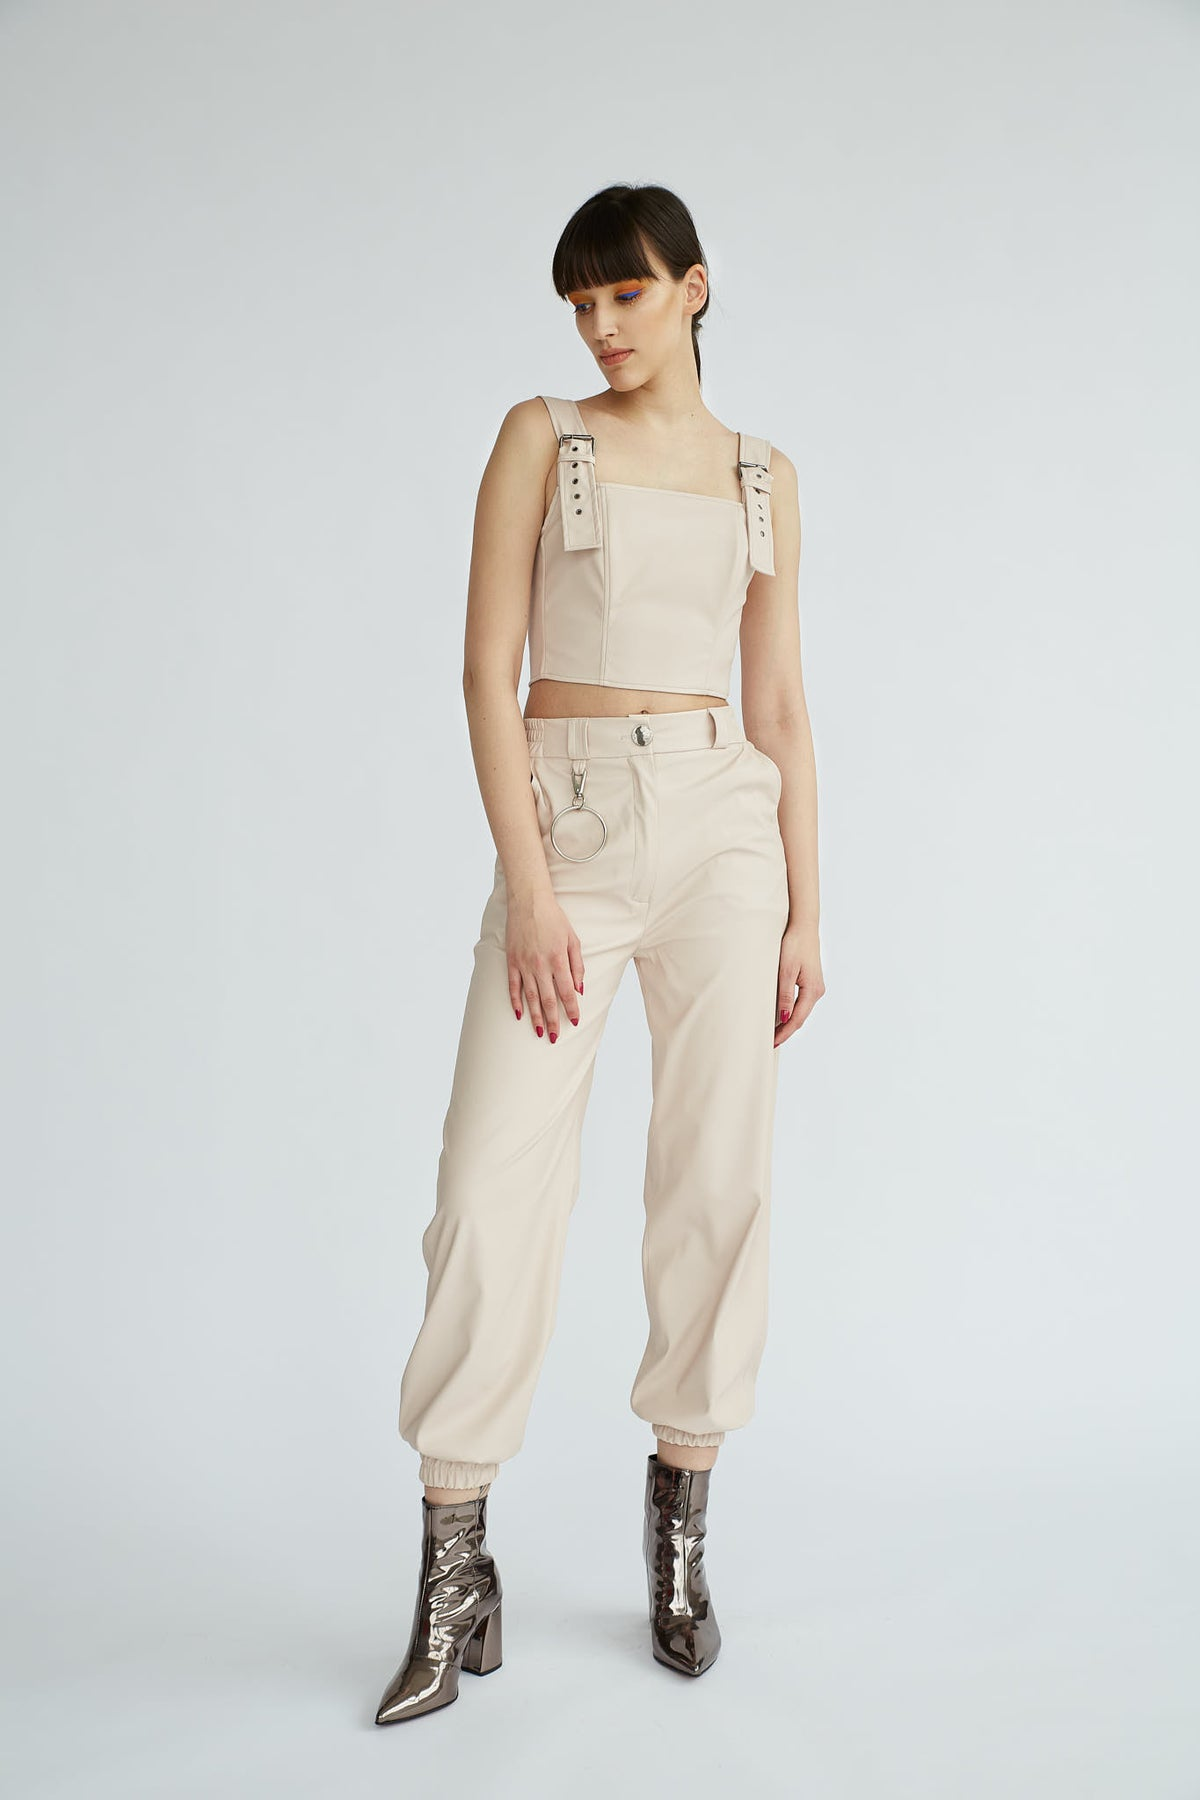 SHOREDITCH-Soft-eco-leather-crop-top-le-slap-clothing.jpg